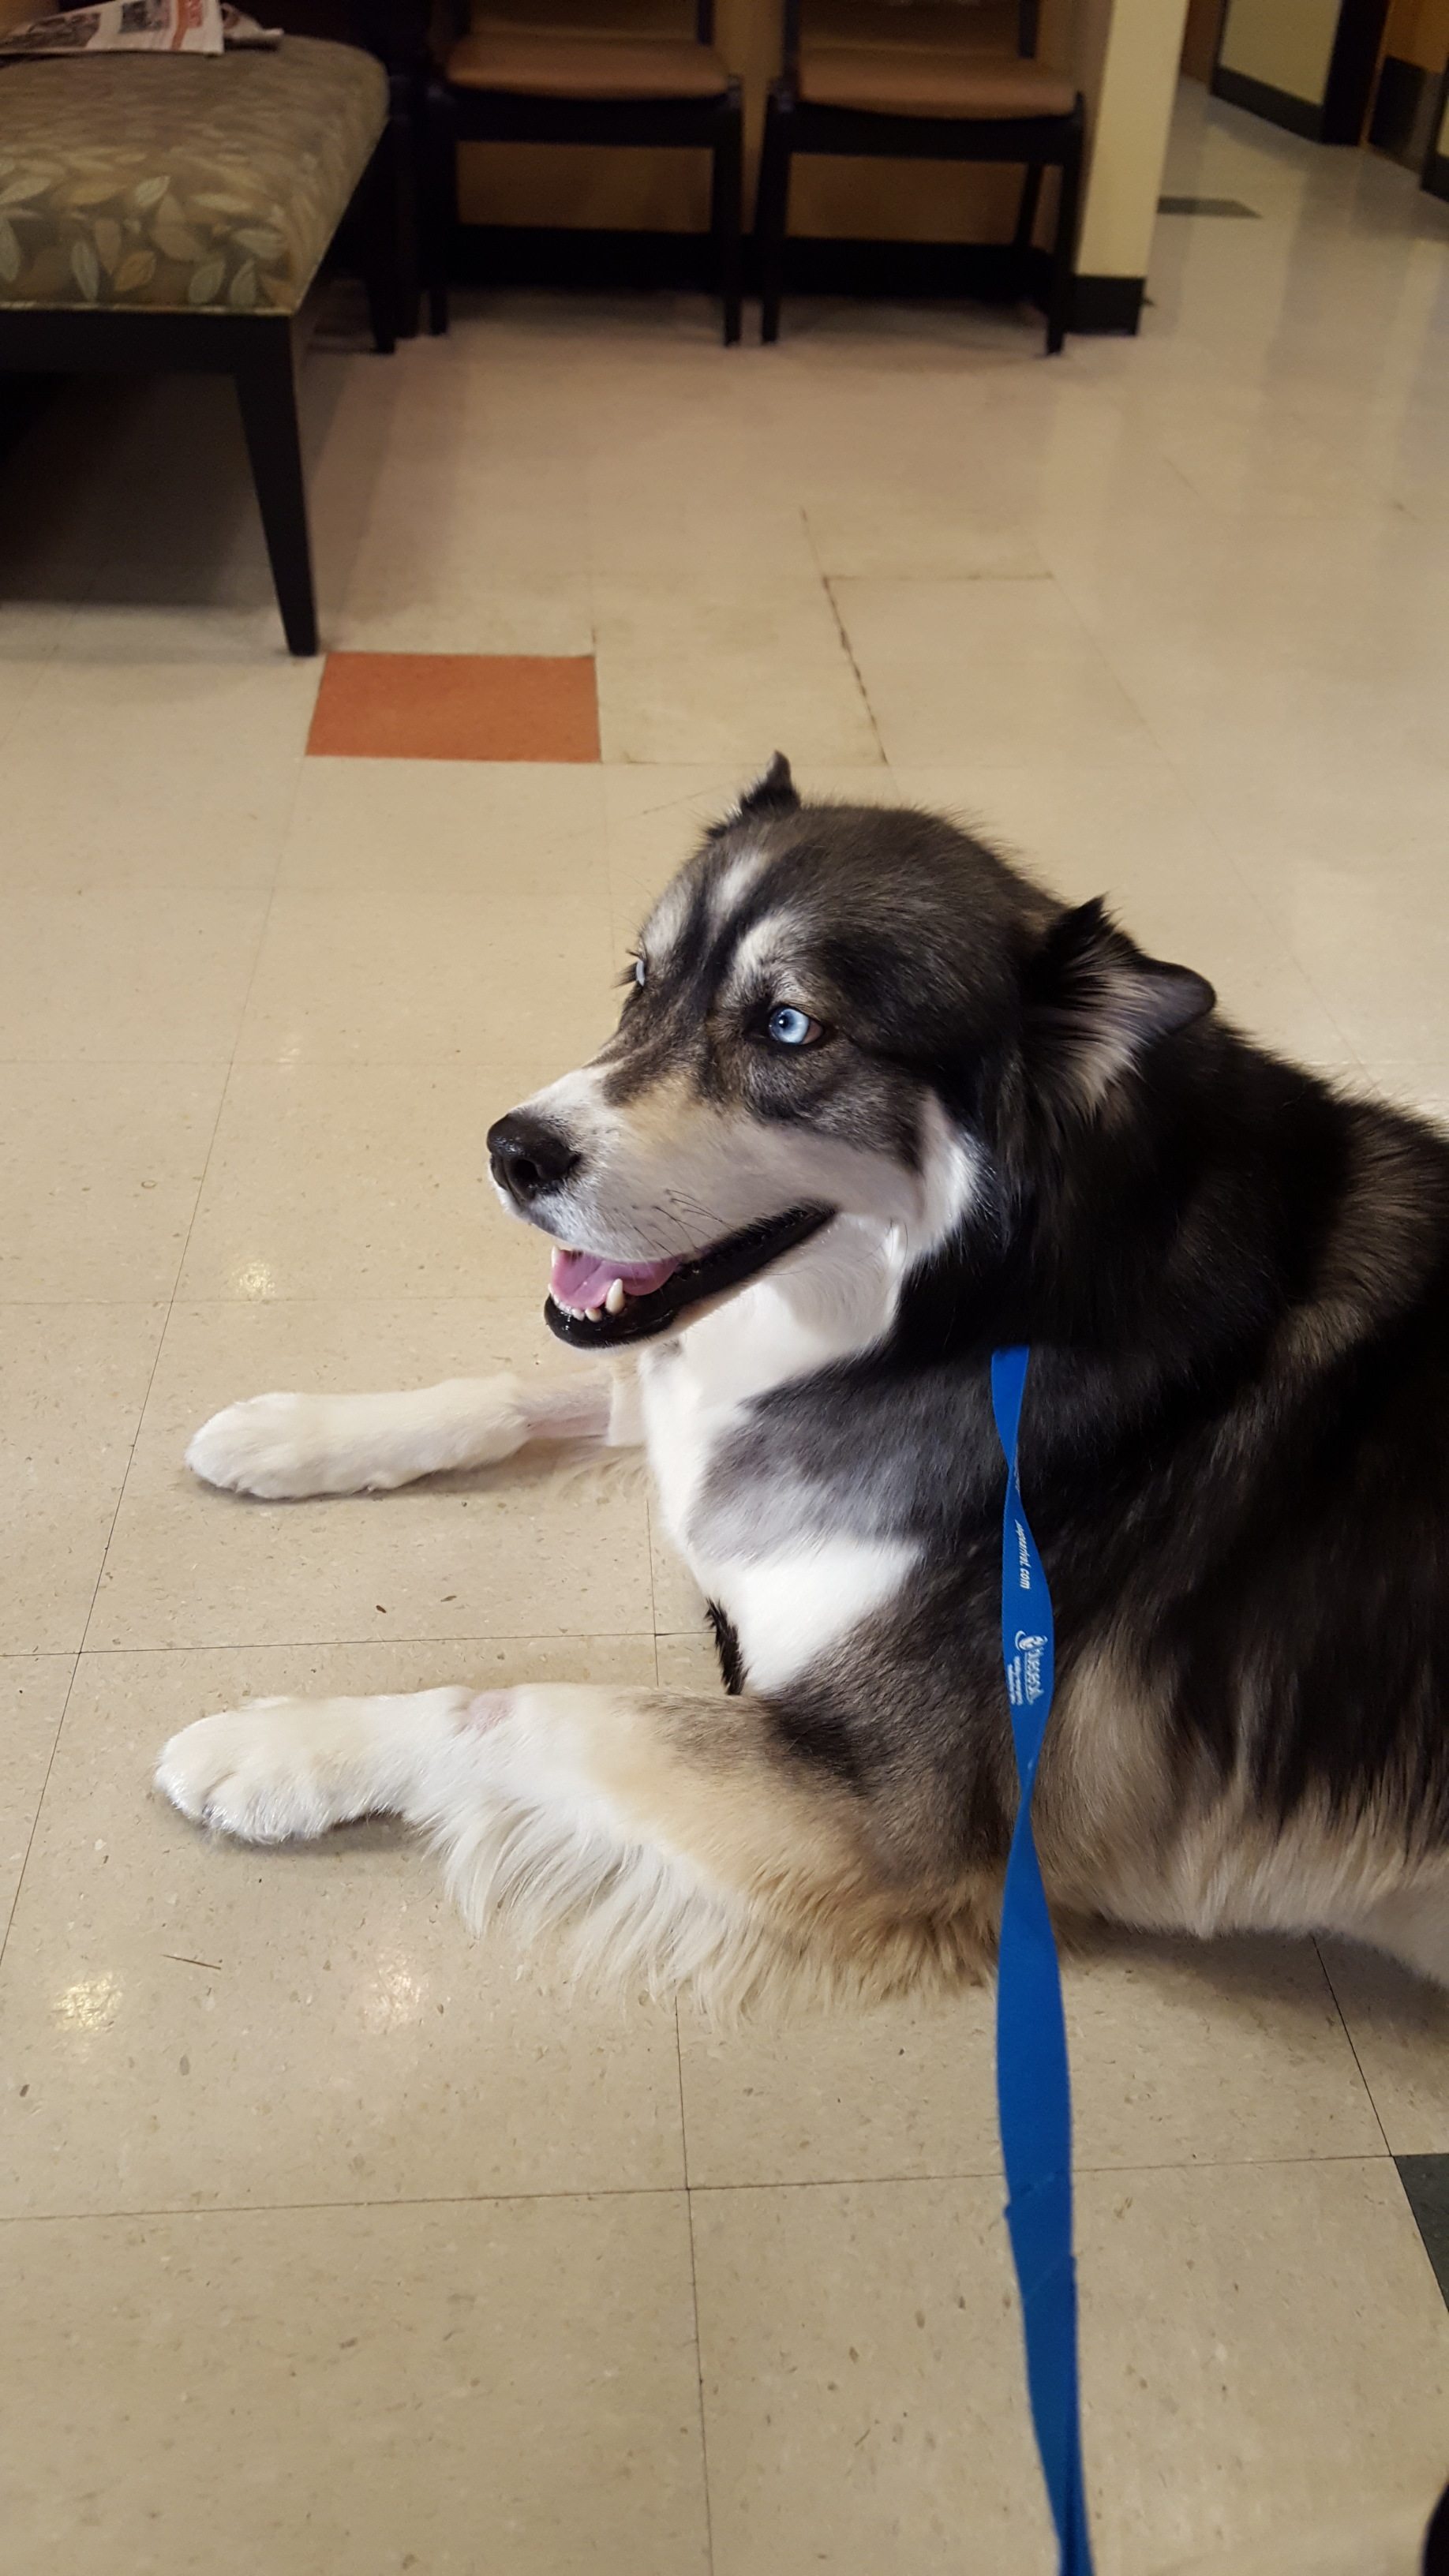 Waiting at the Vet to get checked out